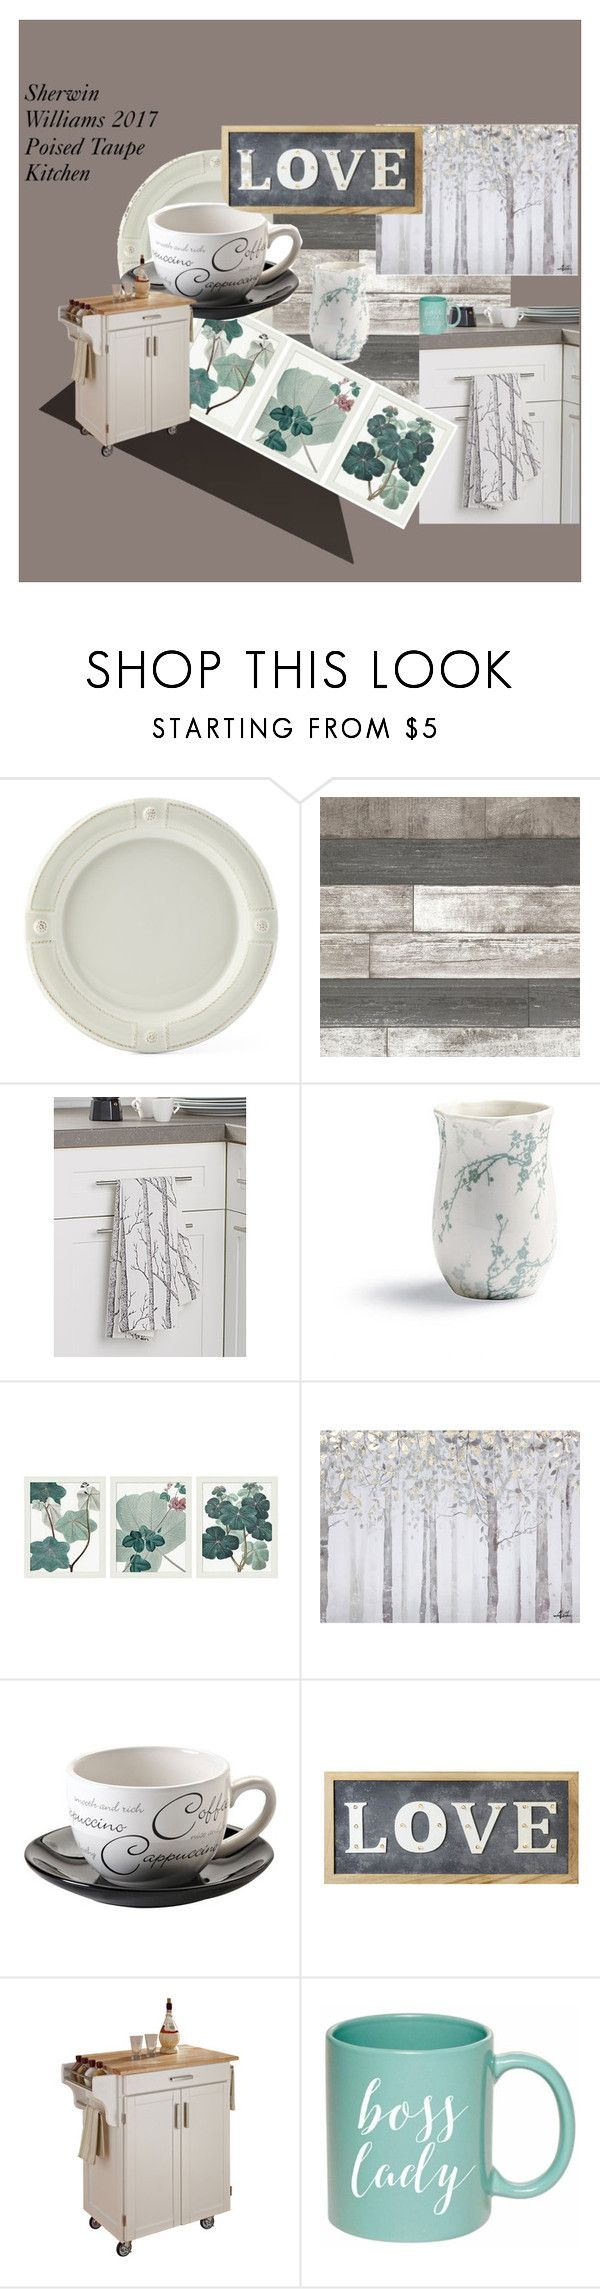 """""""Sherwin Williams Poised Taupe Kitchen"""" by jackie-o-ver-fifty on Polyvore featuring interior, interiors, interior design, home, home decor, interior decorating, Juliska, Frontgate, Pottery Barn and Yosemite Home Décor"""